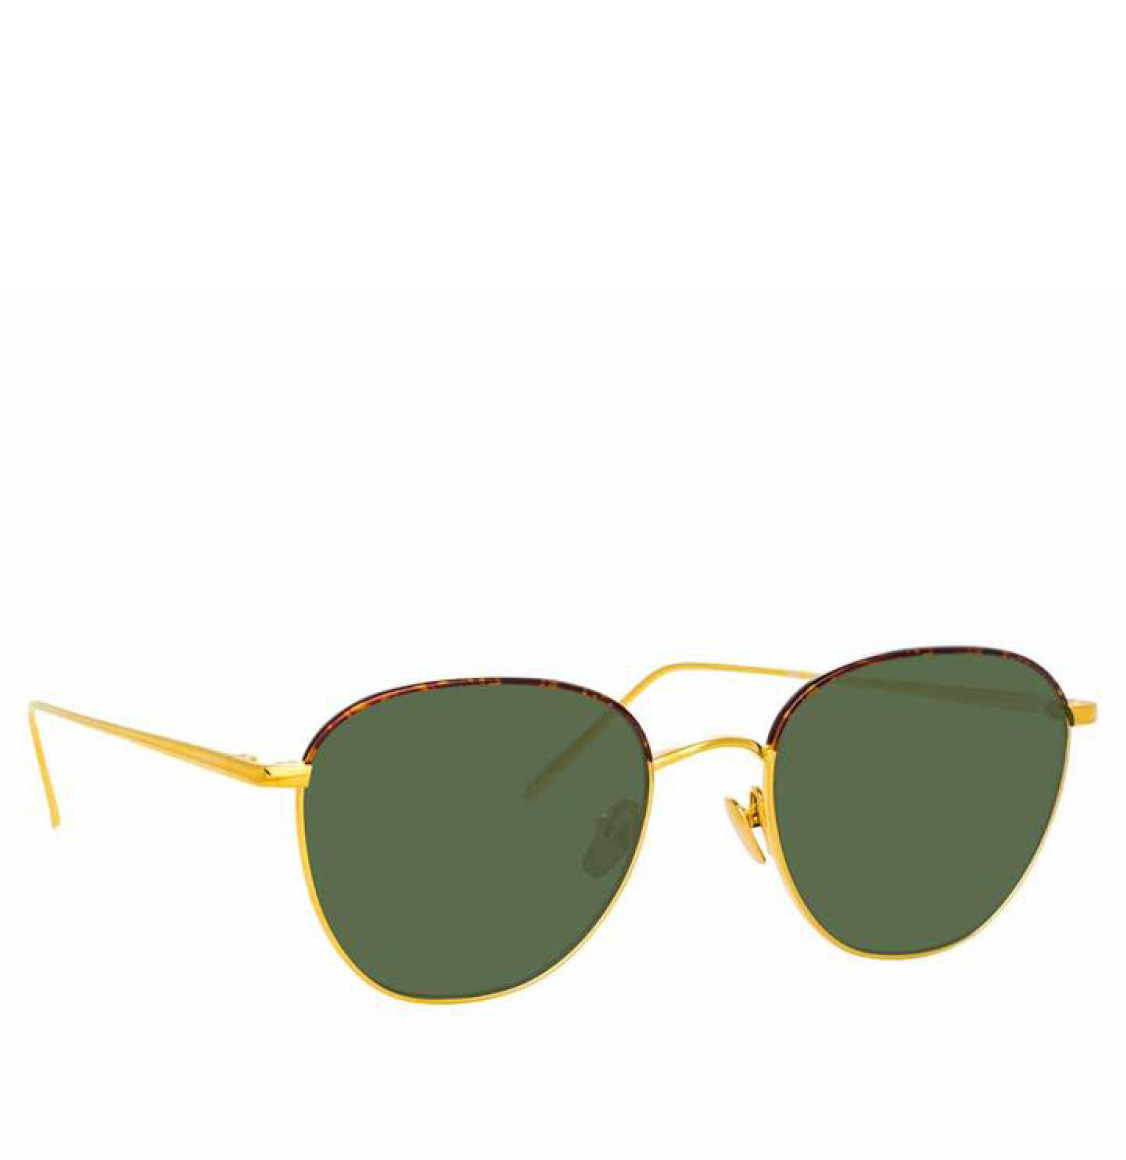 Linda Farrow 819 C19 Square Yellow Gold Tortoiseshell 52 Γυαλιά Ηλίου